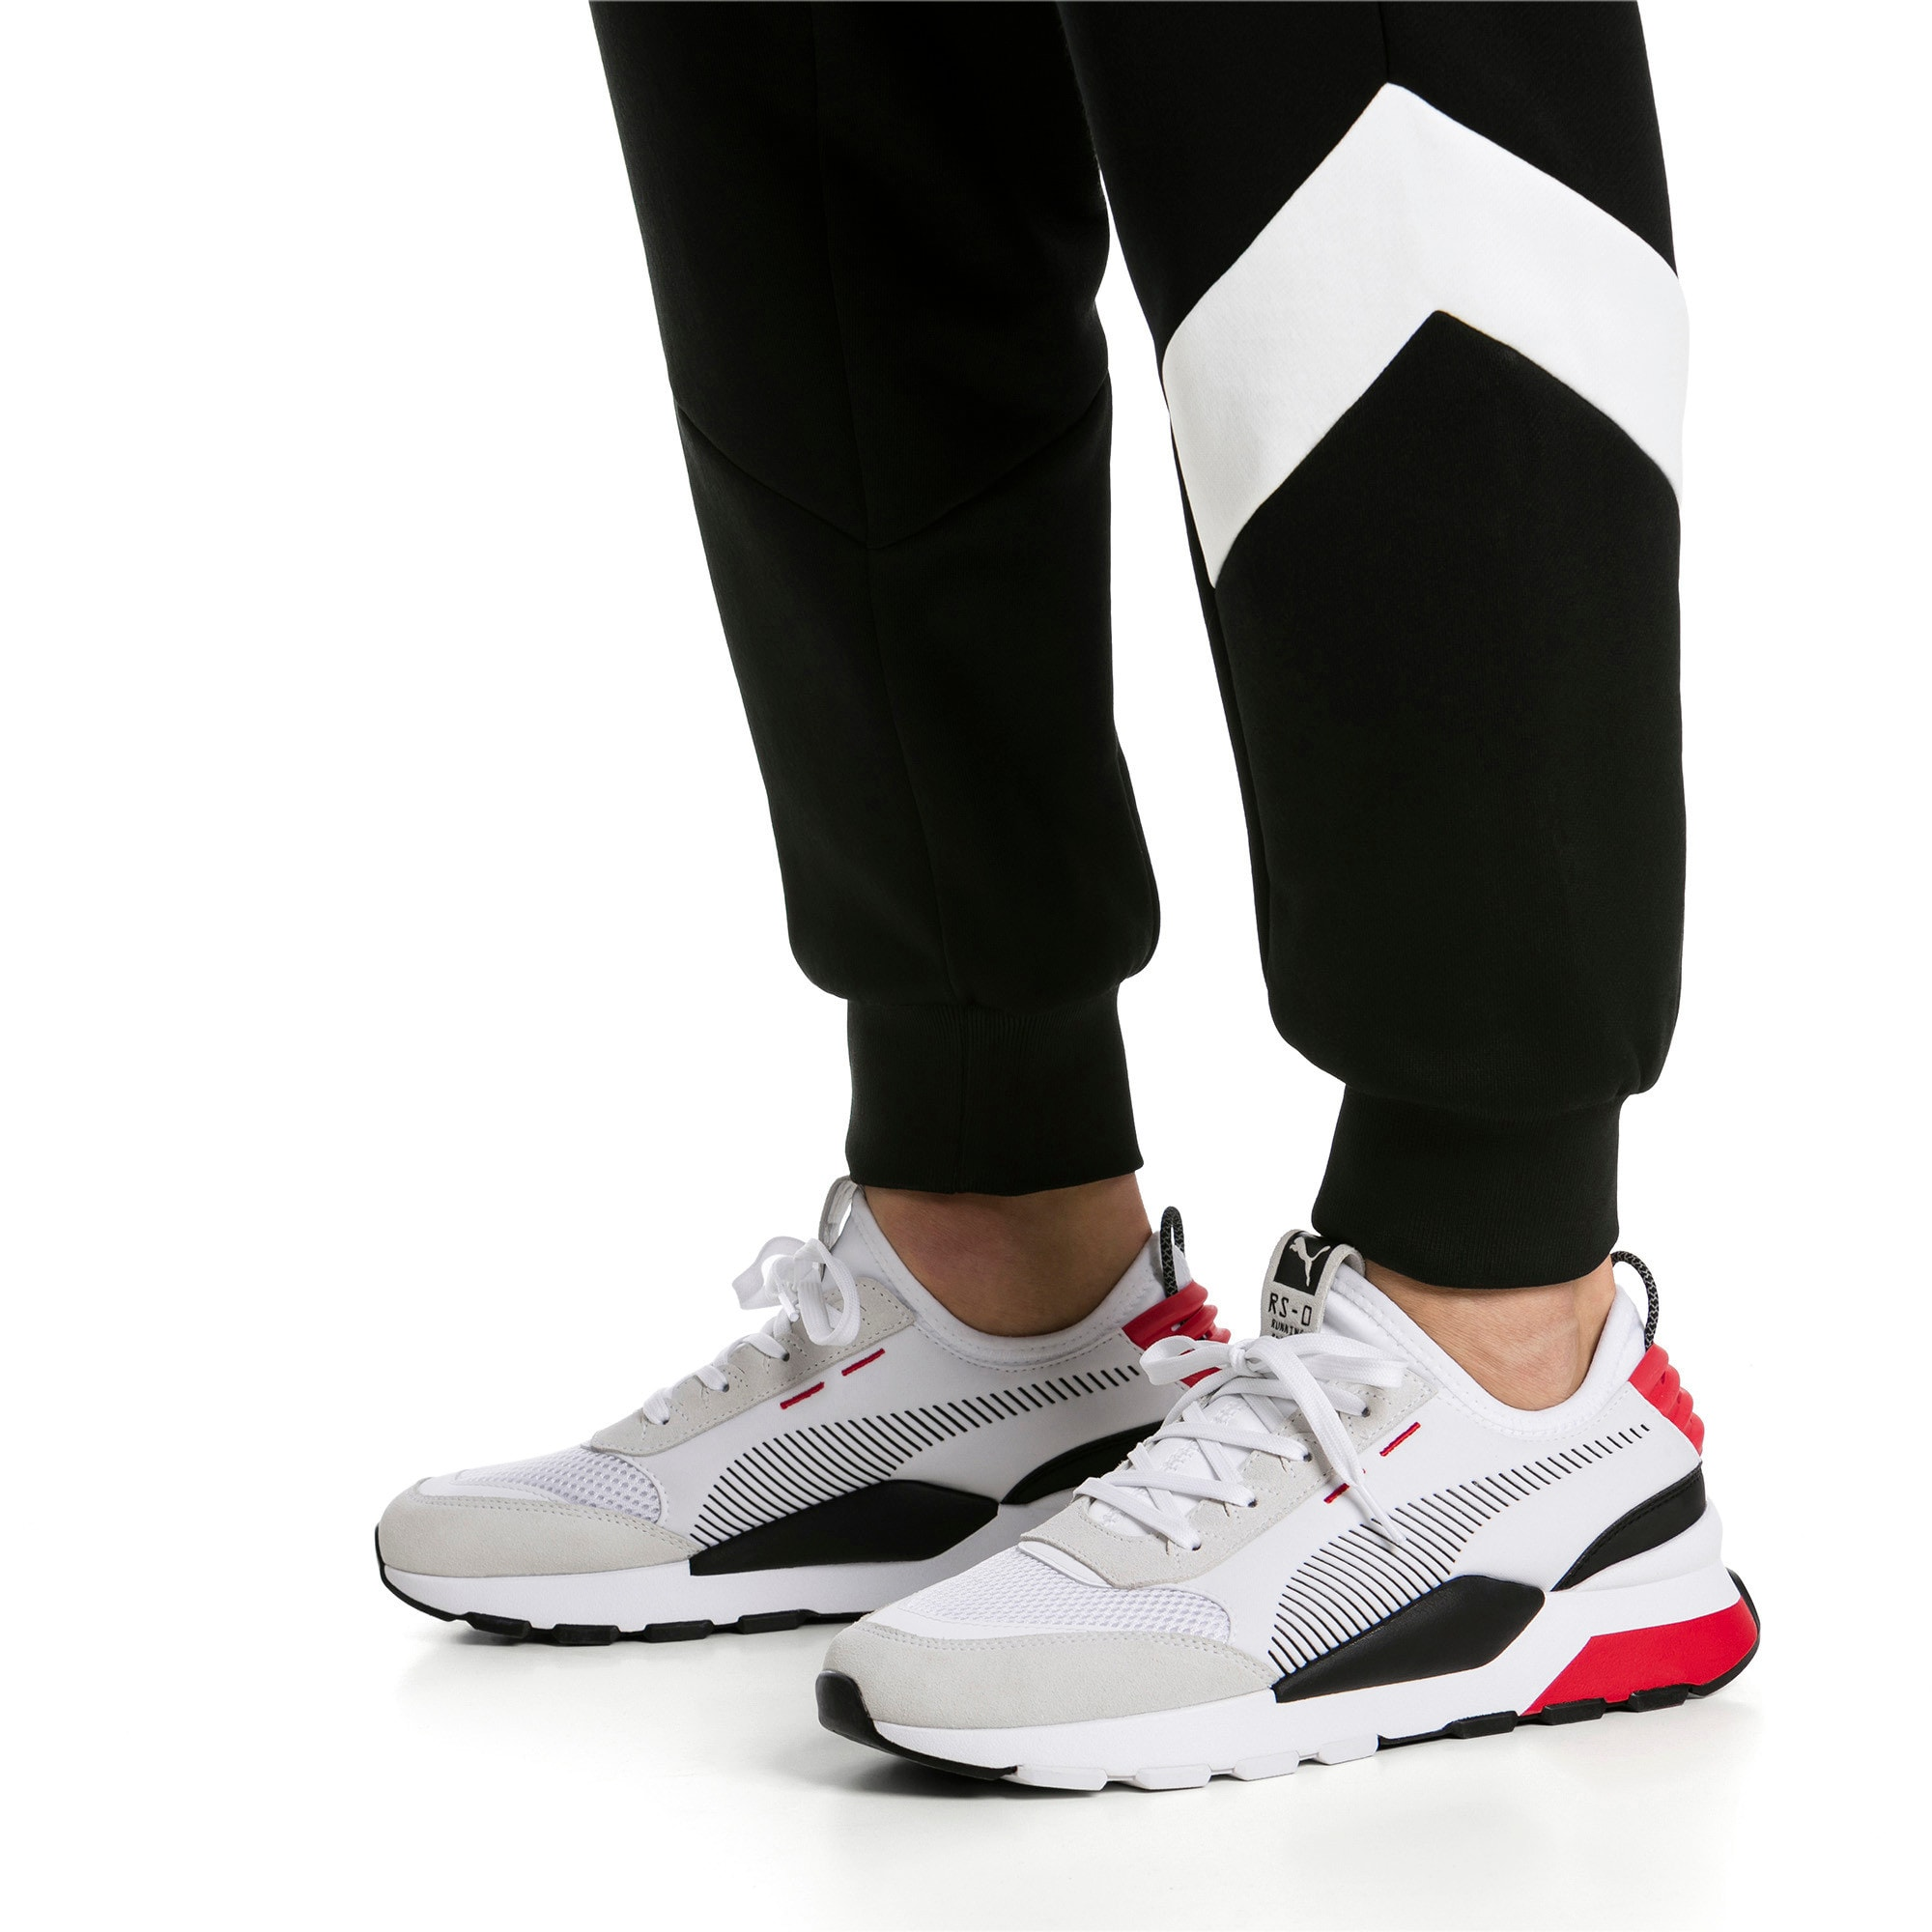 Thumbnail 2 of RS-O Winter Inj Toys Men's Sneakers, Puma White-High Risk Red, medium